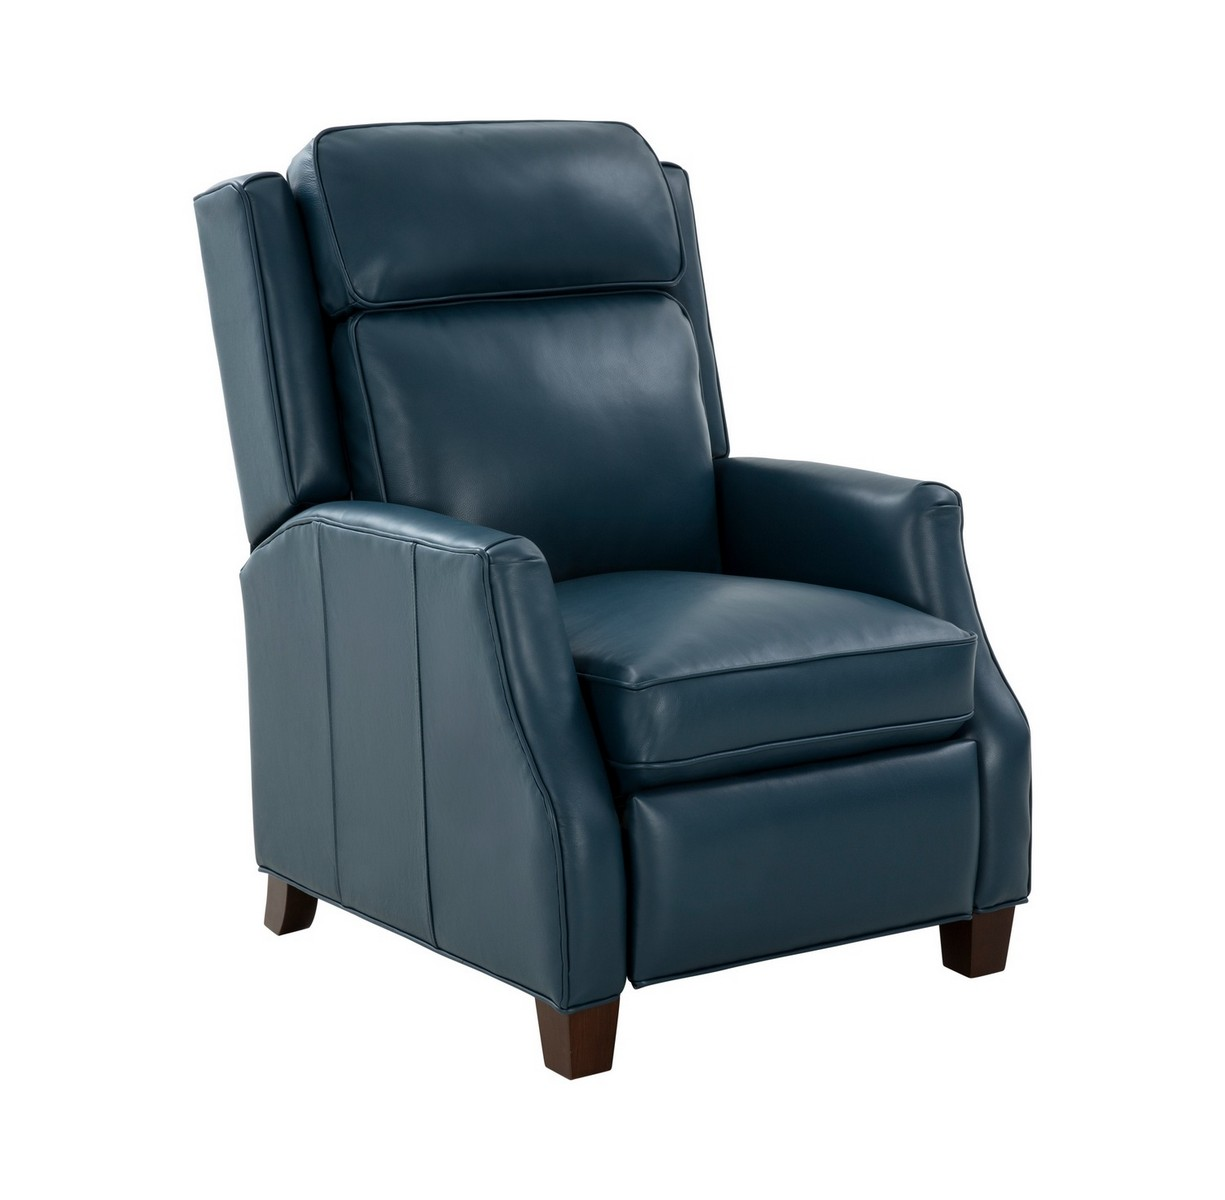 Barcalounger Nixon Recliner Chair - Prestin Yale Blue/All Leather